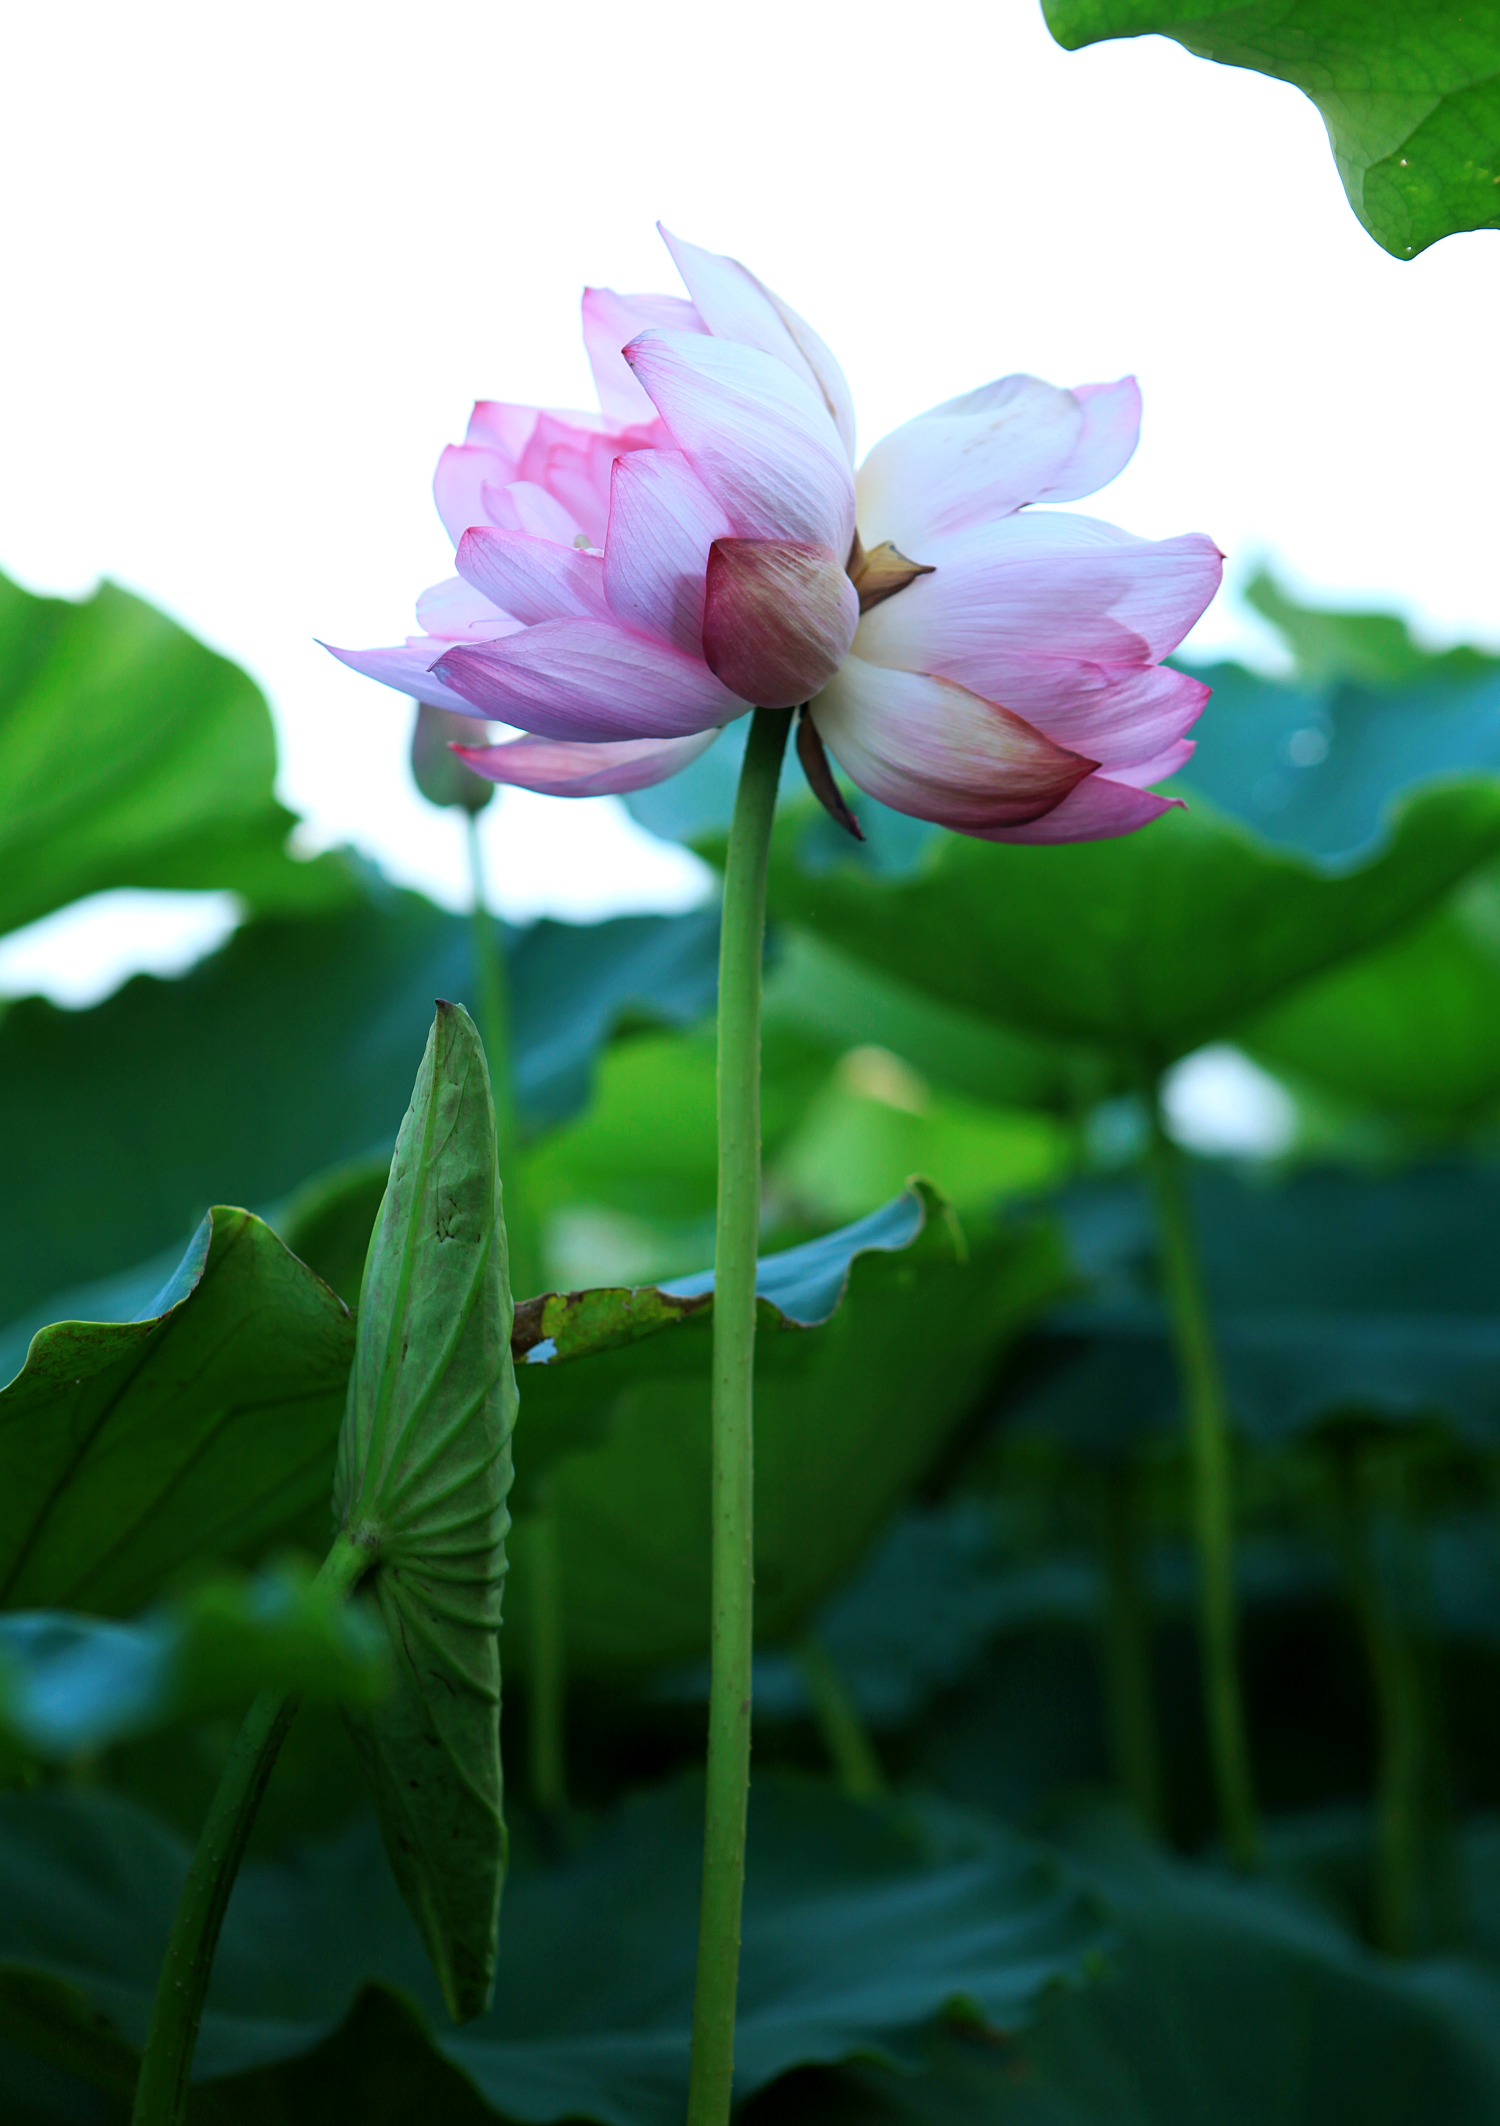 Rare and precious king lotus, 300,000 VND 1 branch is still hunted by many people 3